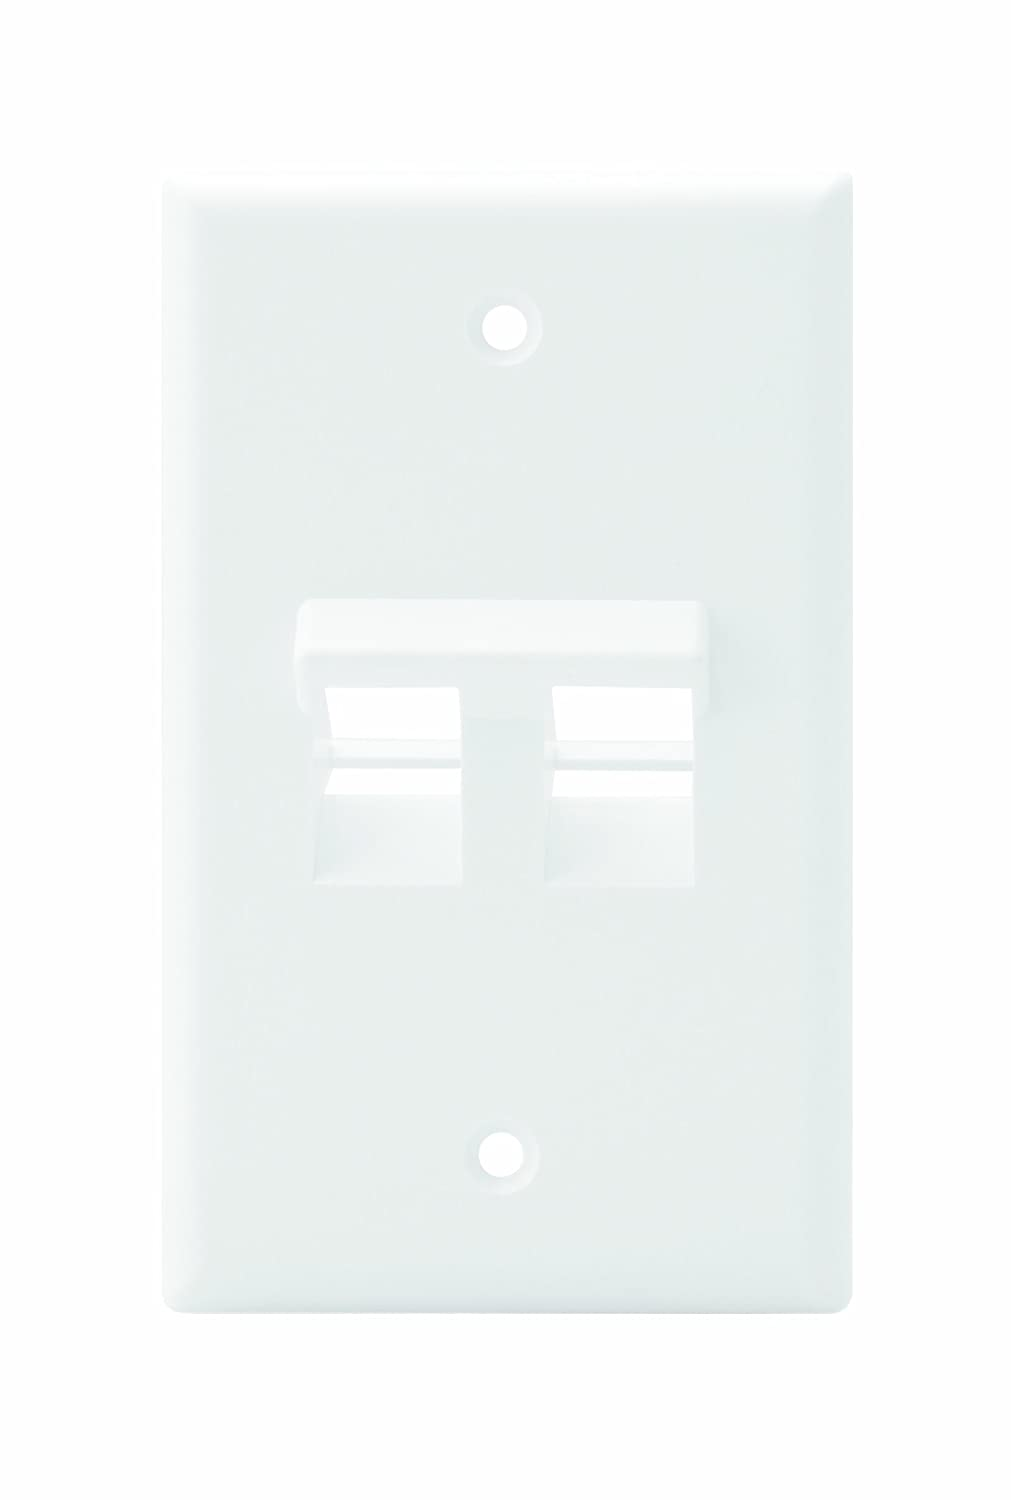 Leviton 41081 2wp Angled Quickport Wallplate 2 Port Ivory 1 To 5 Modular 4wire Phone Jack Converter Adapter C0261 Single Gang White Home Improvement